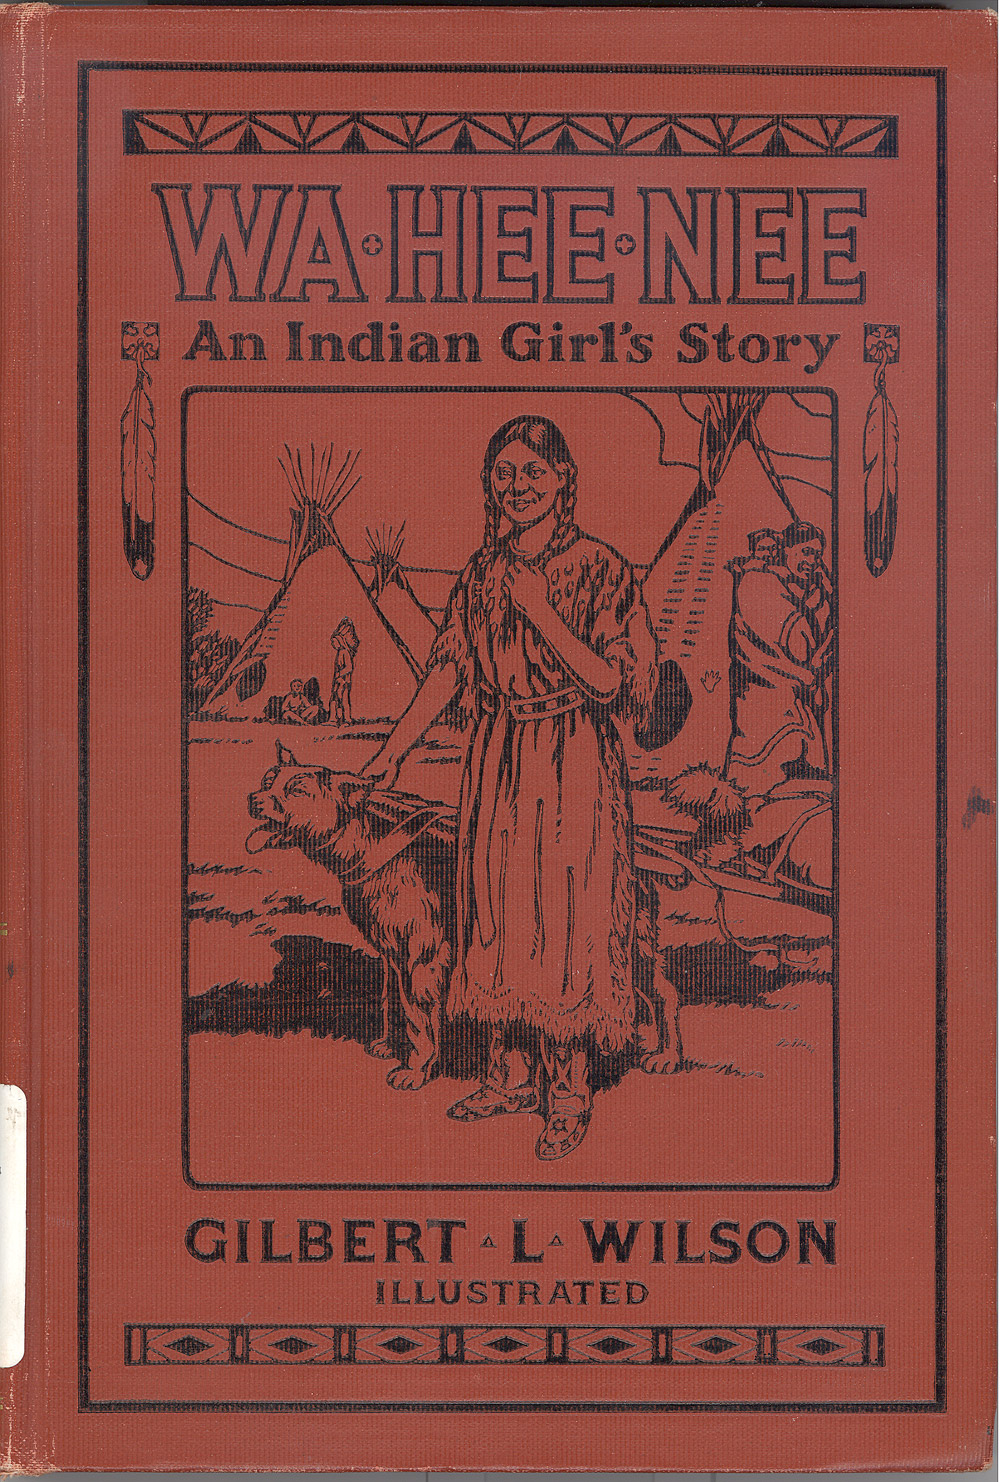 Waheenee Book Cover